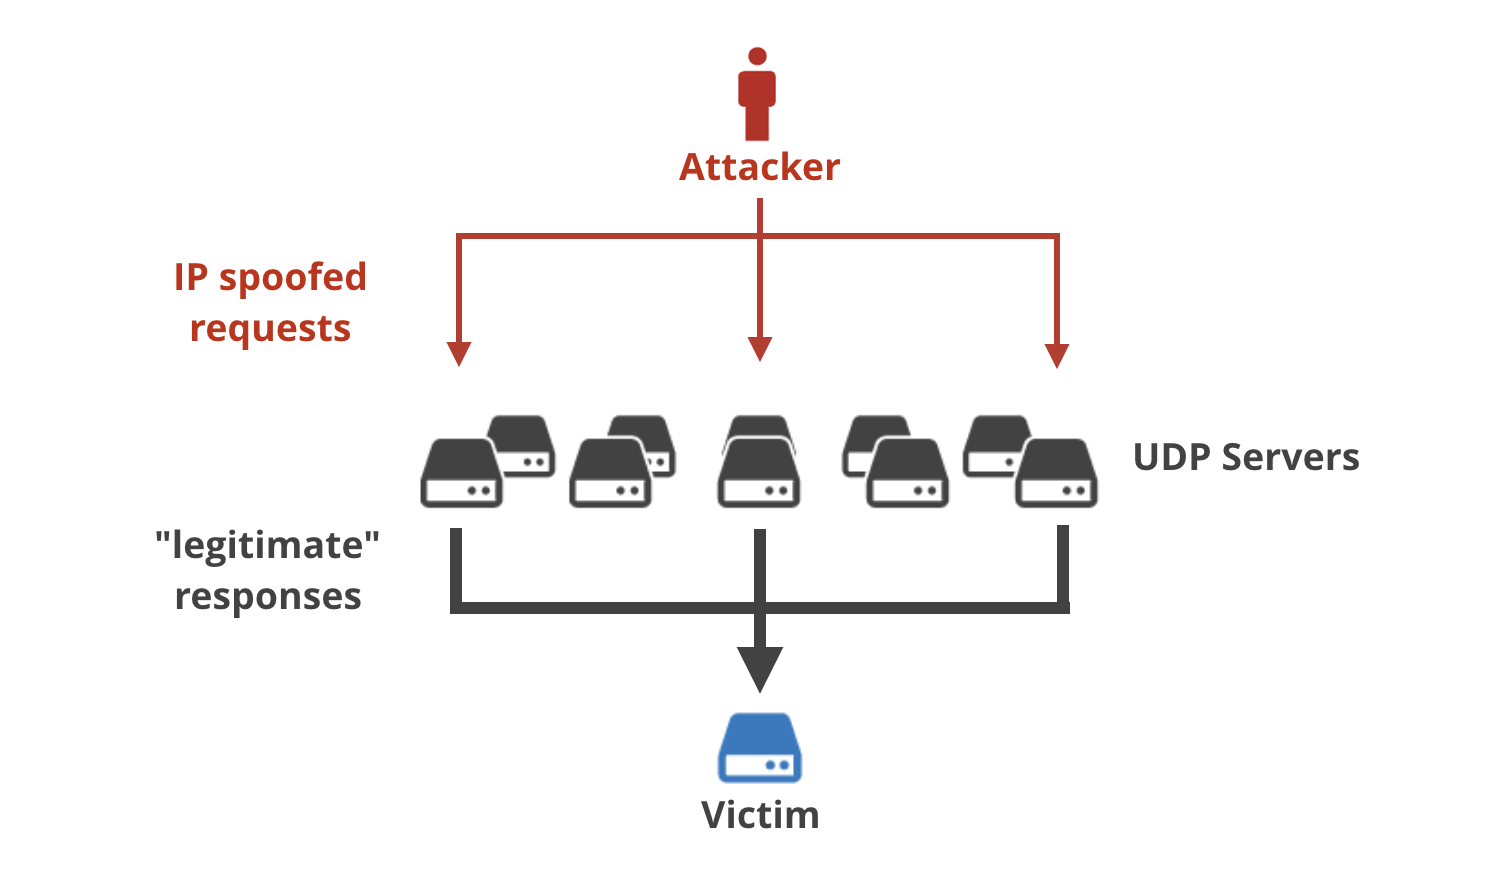 The real cause of large DDoS - IP Spoofing